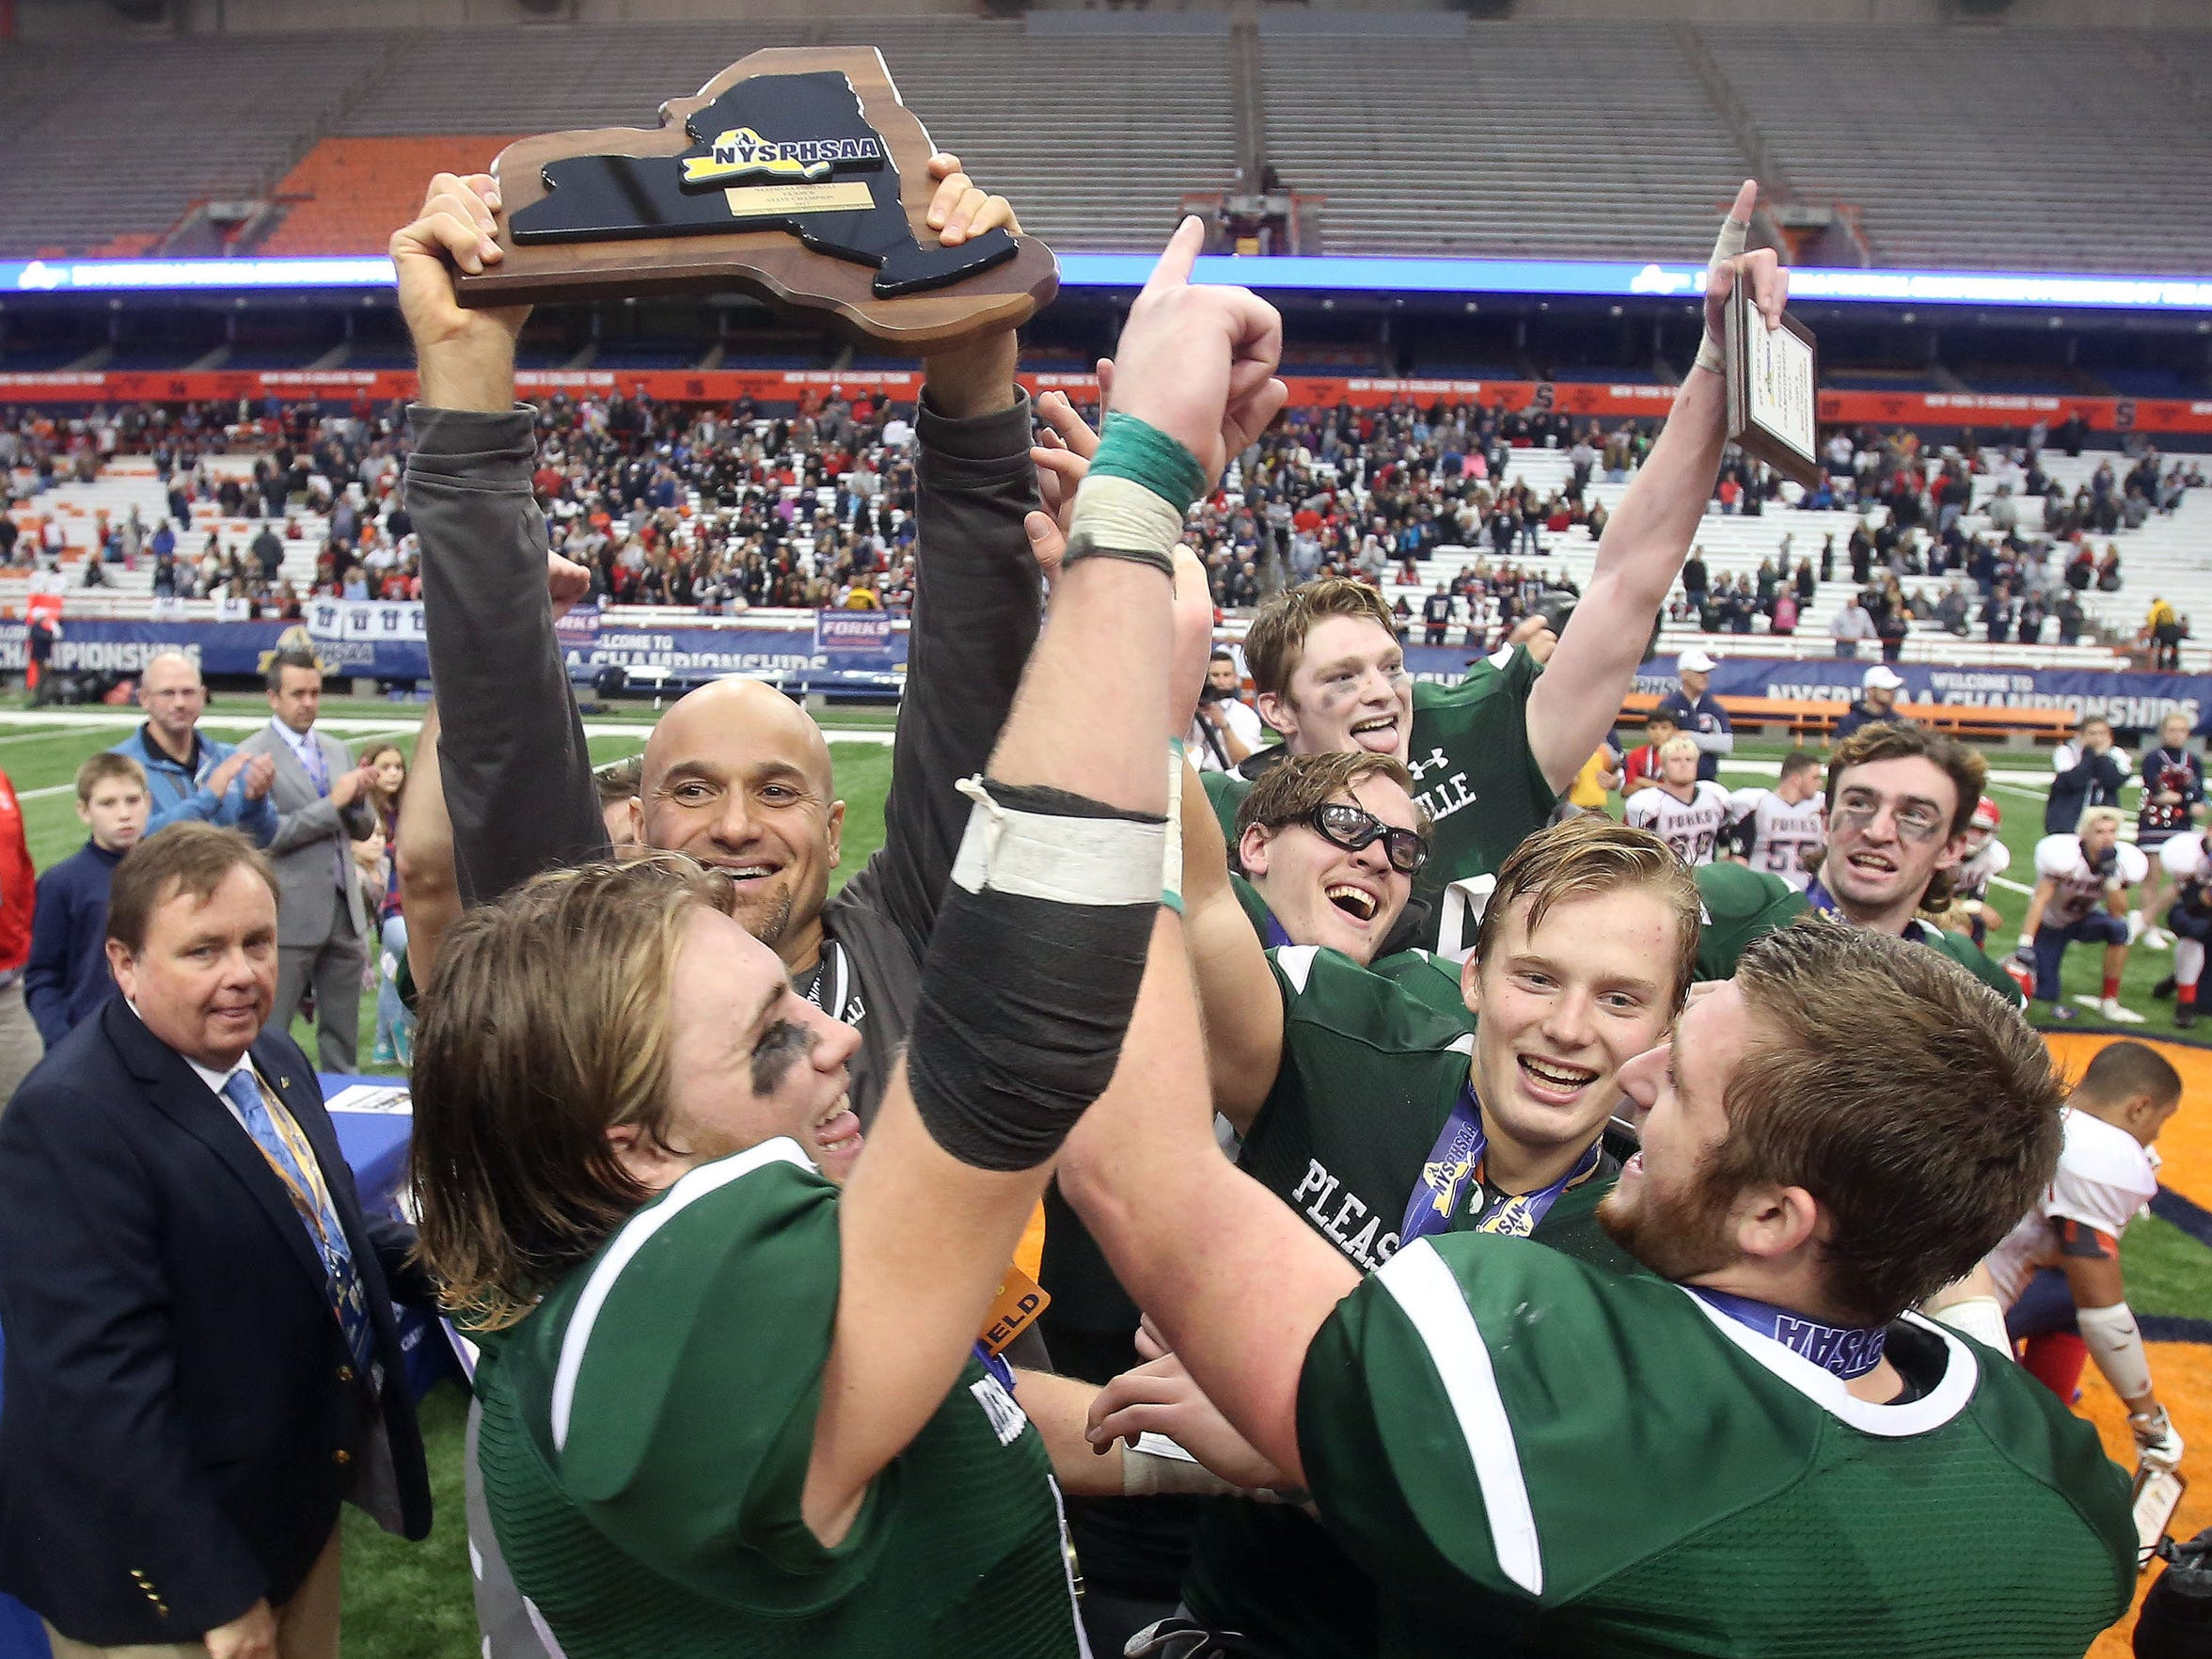 Pleasantville players celebrates their victory over